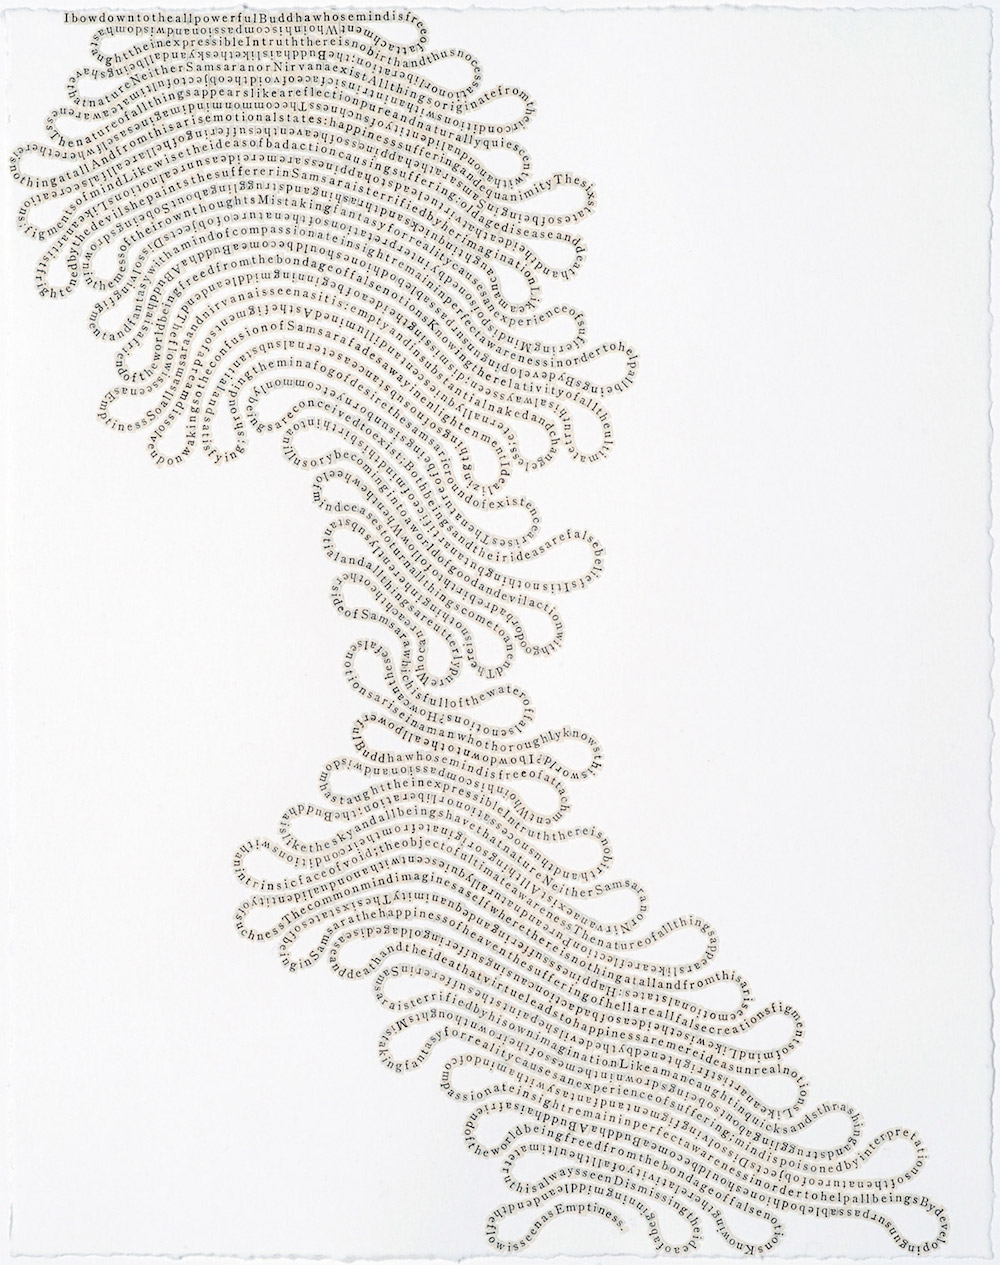 New Text Drawings Formed by Letters From Religious Texts by Meg Hitchcock